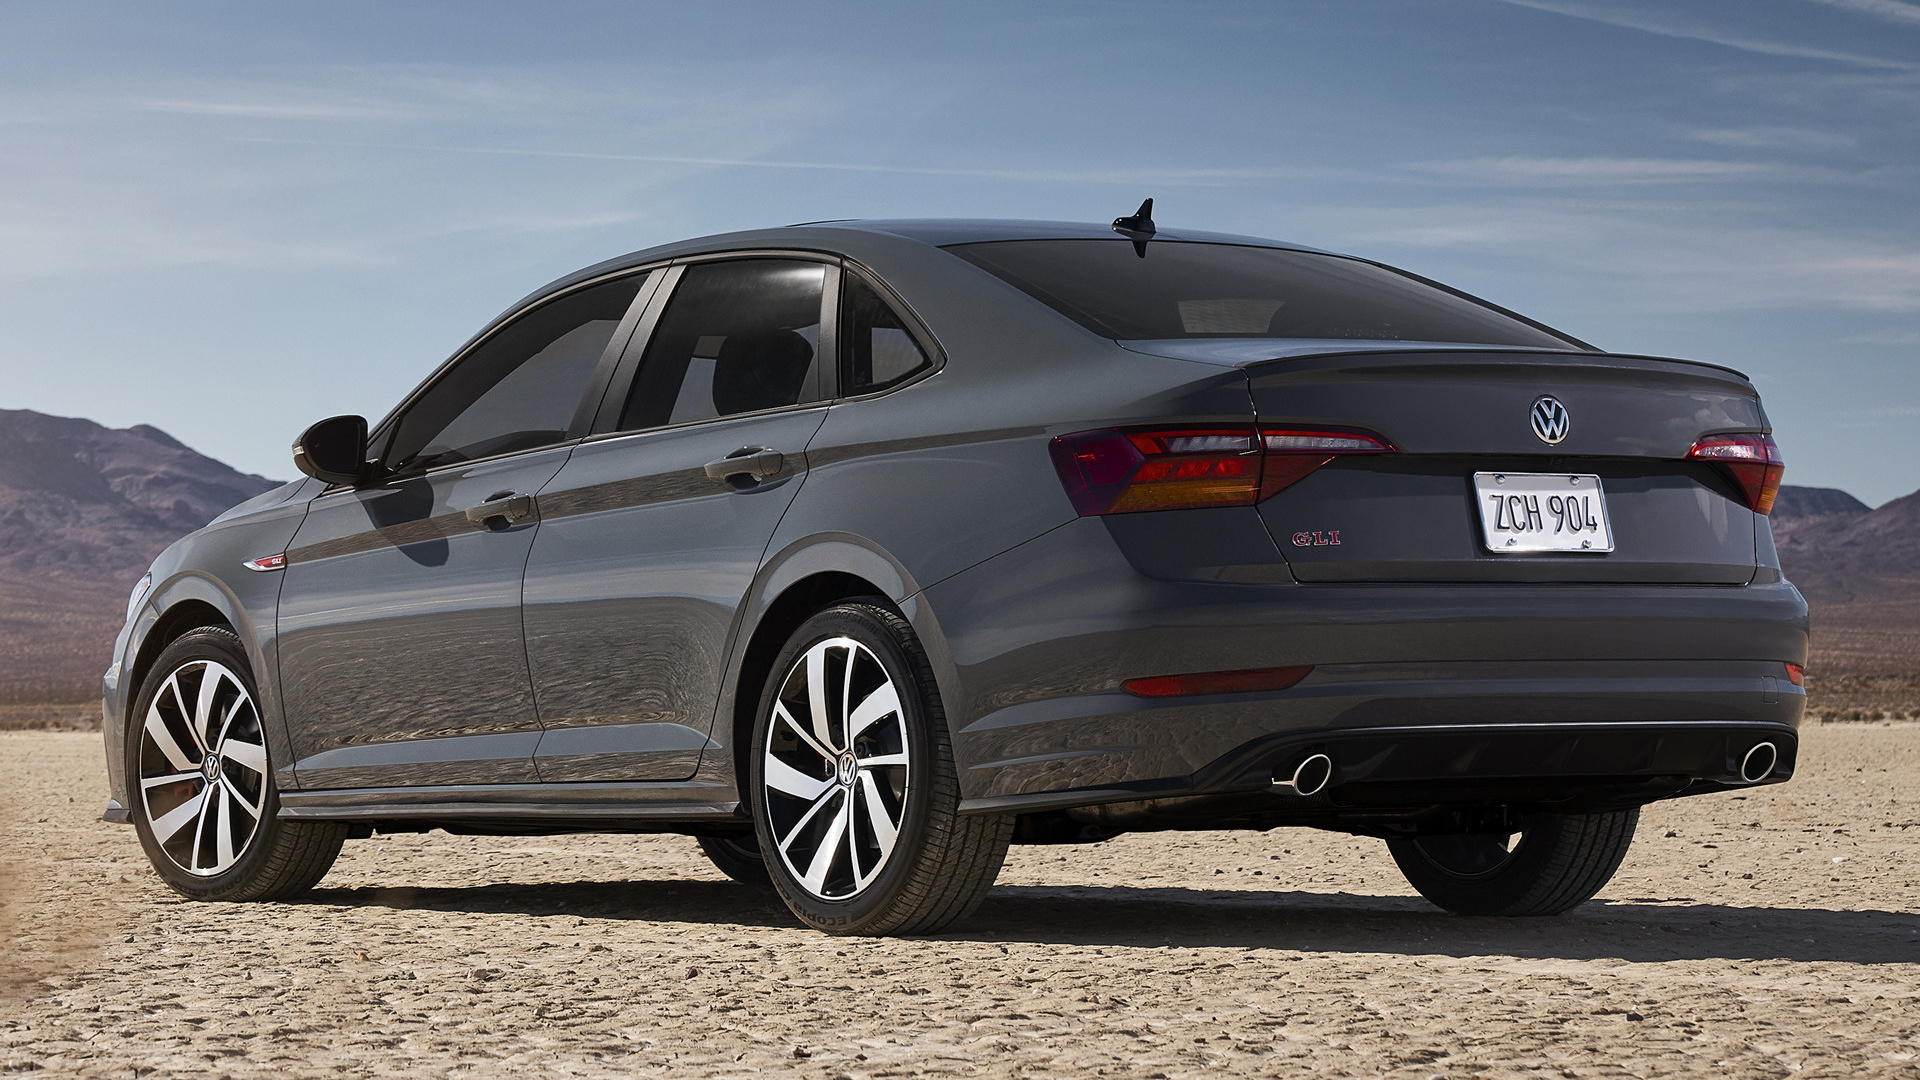 2019 Droped Jetta Wallpapers: 2019 Volkswagen Jetta GLI - Wallpapers And HD Images